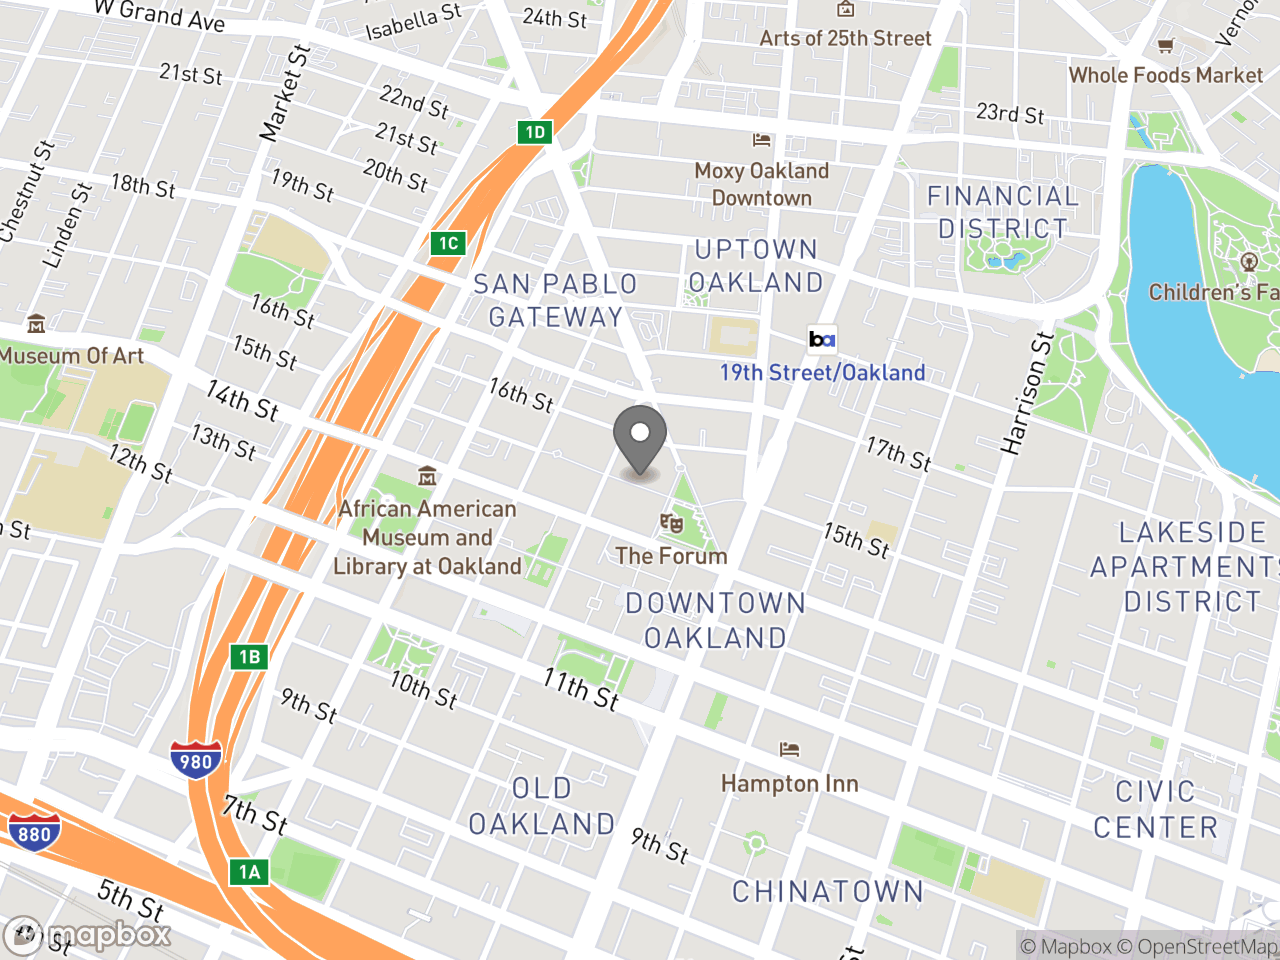 Map location for All Plan Publications, located at 250 Frank H. Ogawa Plaza in Oakland, CA 94612